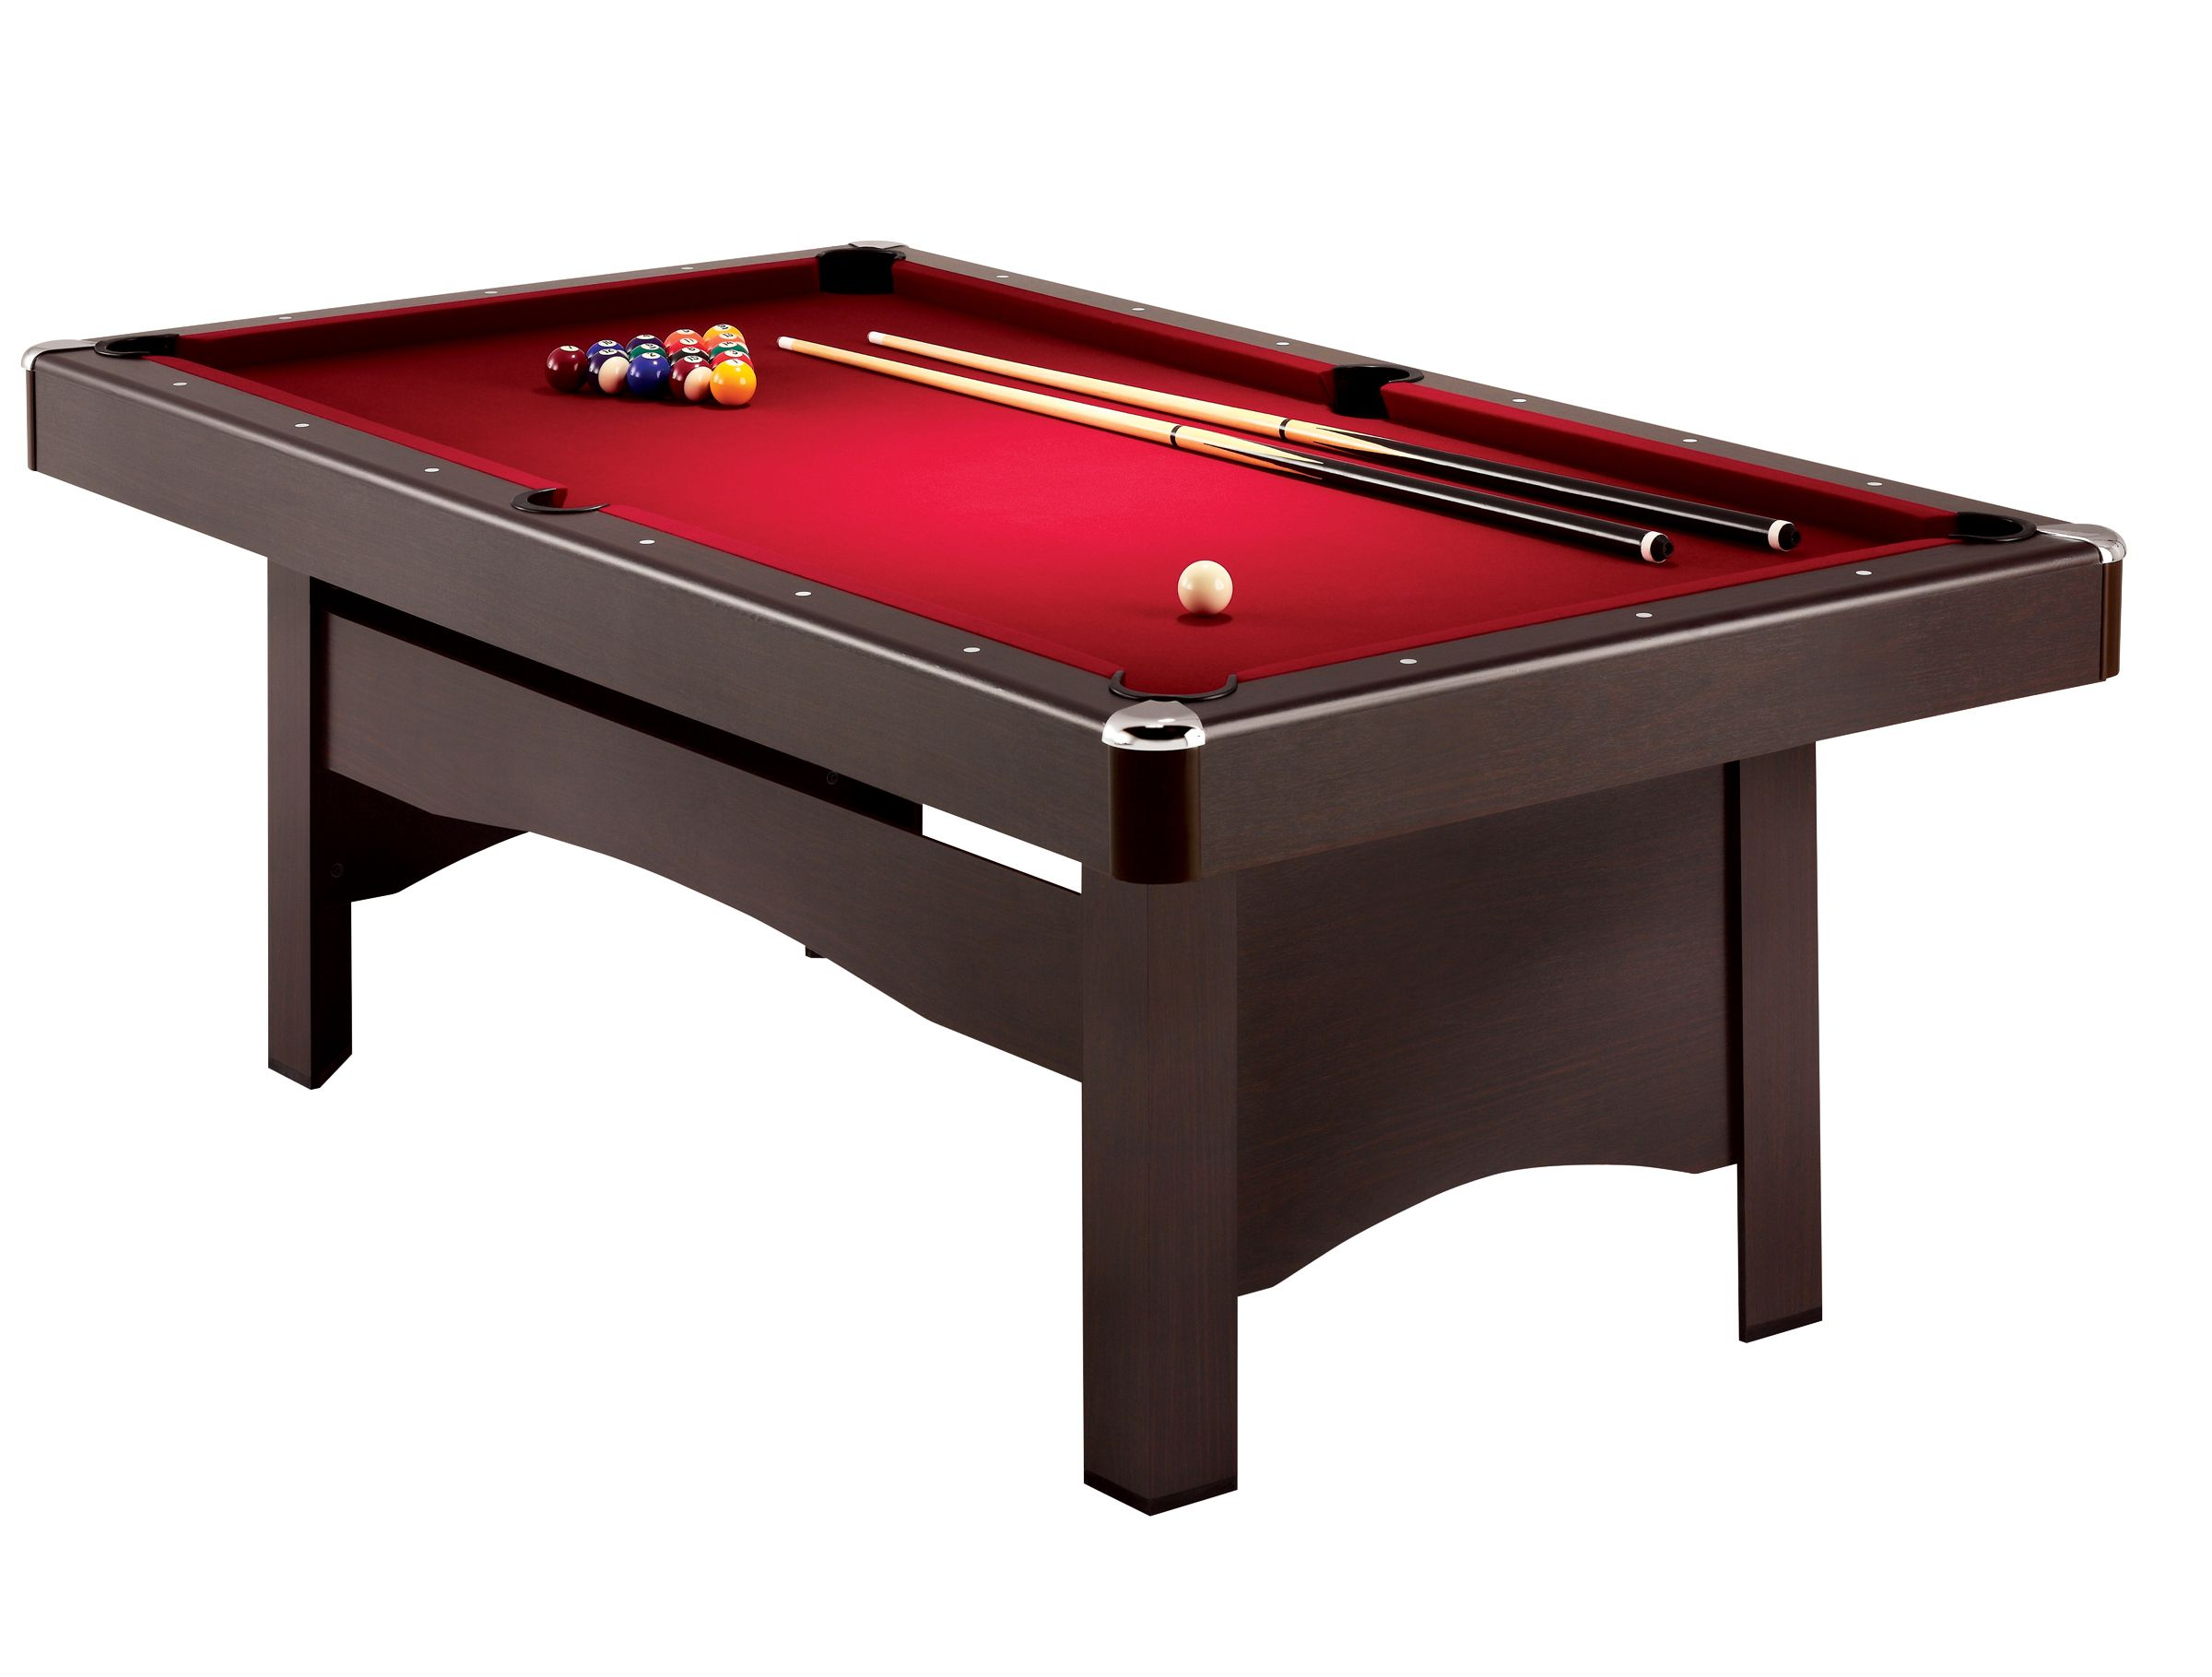 Mizerak  P1101sf  Tribute 7 Ft Pool Table  Sears Outlet